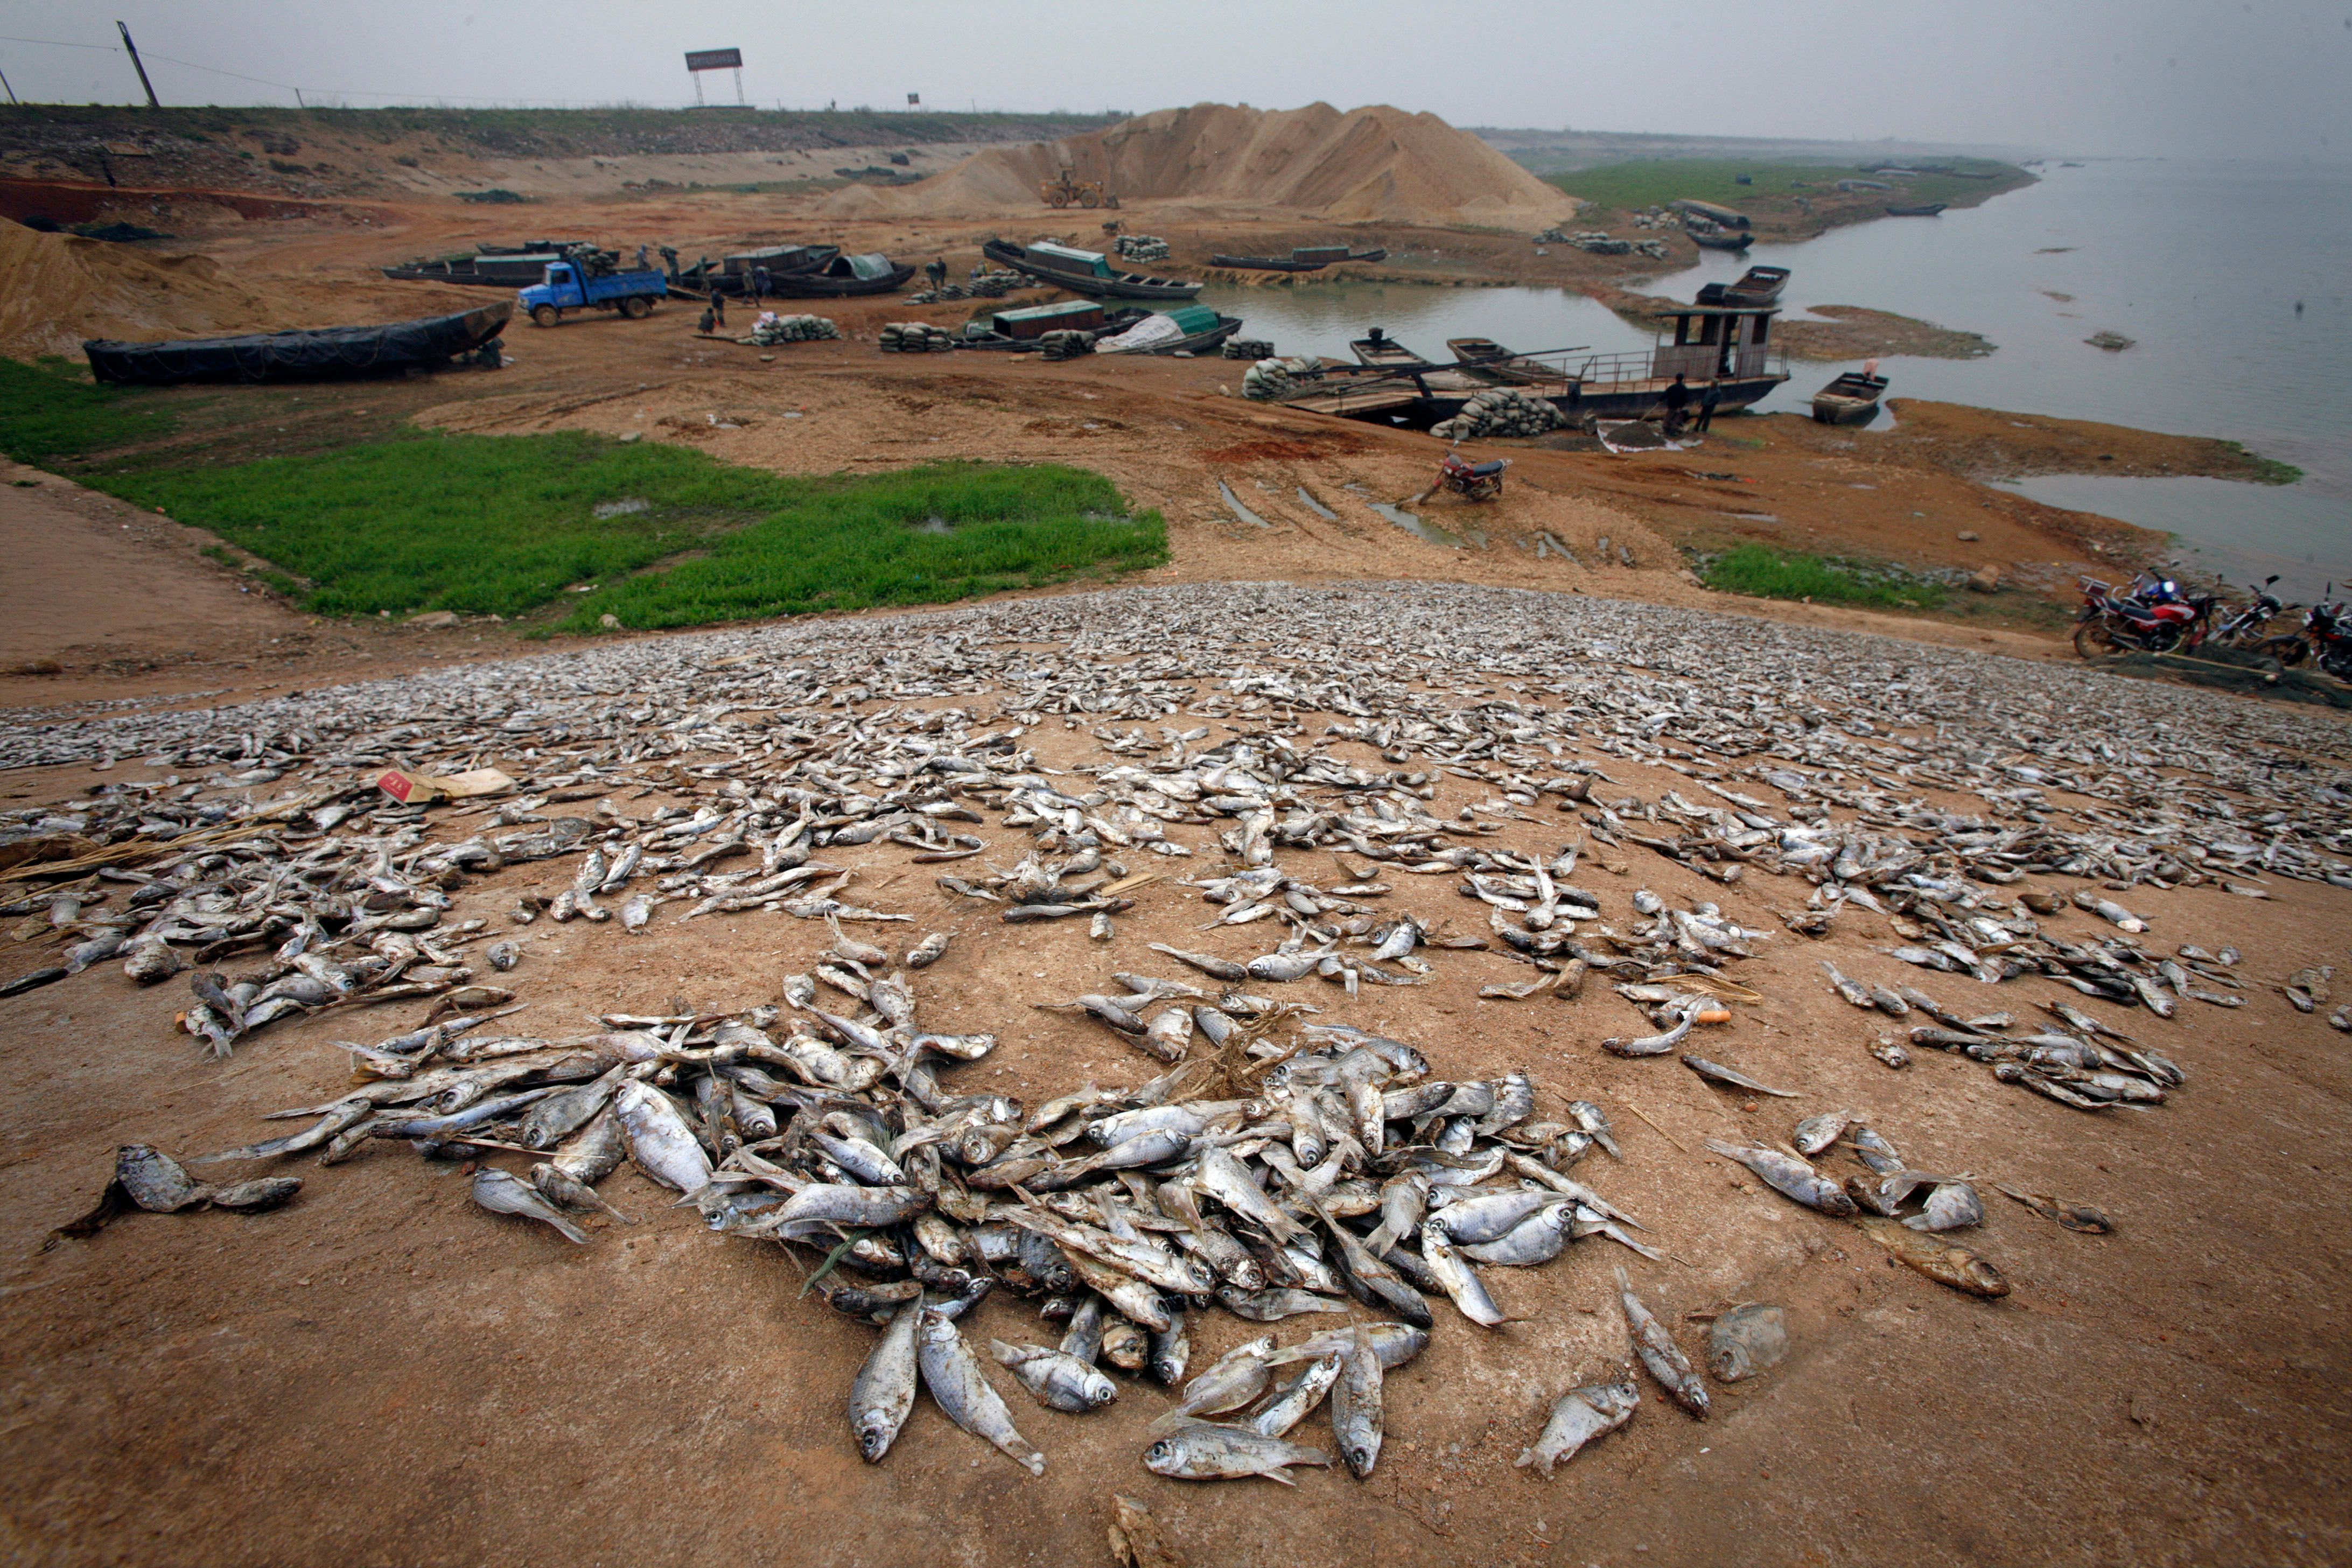 Dead fish are seen on the banks of the drought affected lake of Poyang near Yugan, Jiangxi province, March 10, 2008. Poyang Lake, the biggest freshwater lake in China and a reservoir for the Yangtze River, is suffering from a dramatic drought where the area of the lake was up to 10 times larger last year than this year's figure, the Jiangxi hydrological bureau said. The reasons for the changes in the lake are controversial, ranging from global warming to dams upstream. Meanwhile locals are suffering from a loss of income and the ecosytems of the lake have also been affected. REUTERS/Nir Elias (CHINA)